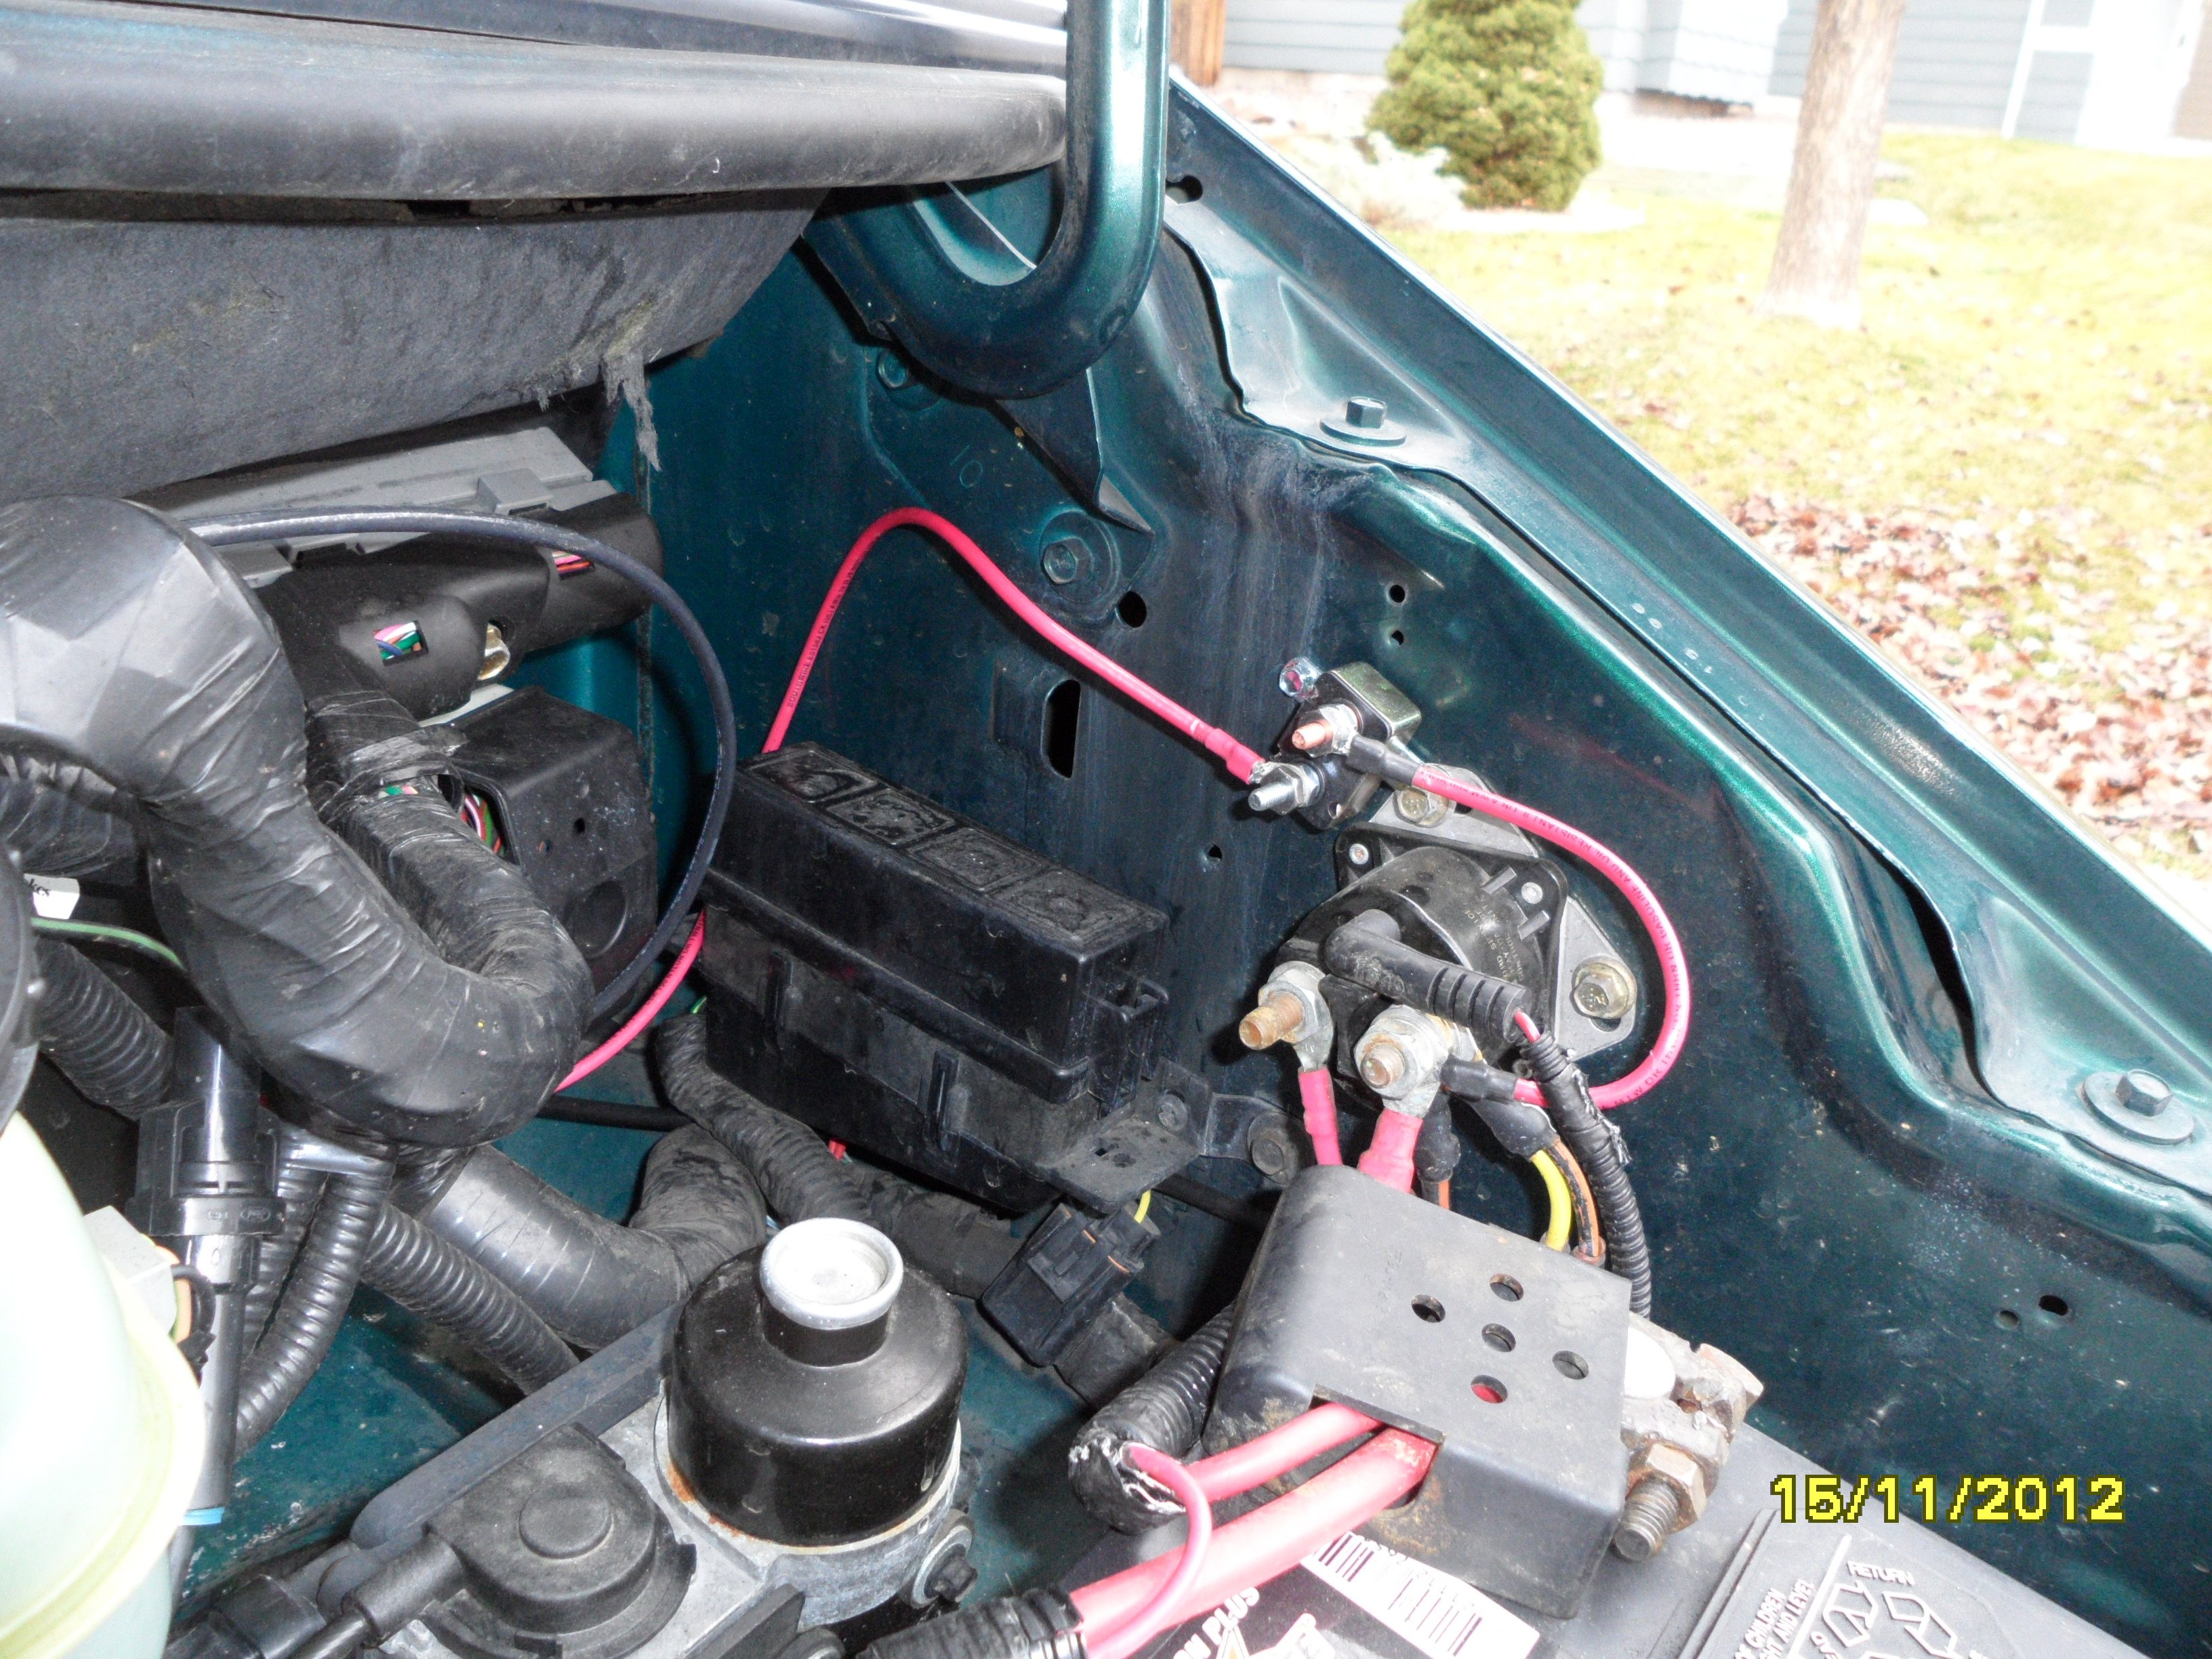 Aerostar Engine Diagram Wiring Library 97 Ford F 150 Stereo 93 F150 Under Hood Relay Location Get Free Image About 1994